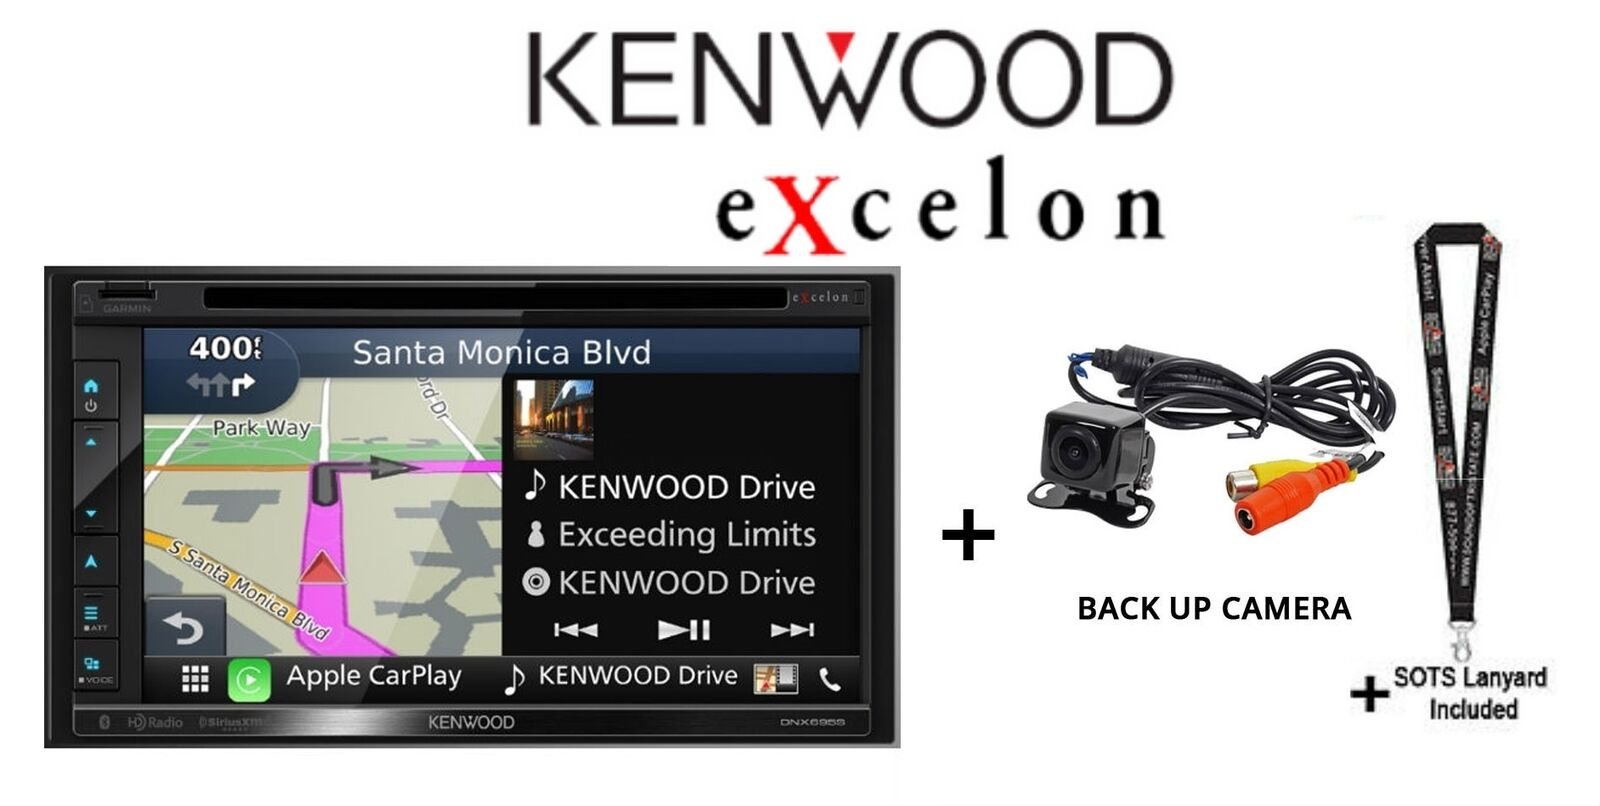 FOR KENWOOD DNX692 DNX692HD HI QUALITY IR MINI NIGHT VISION BACK UP CAMERA //